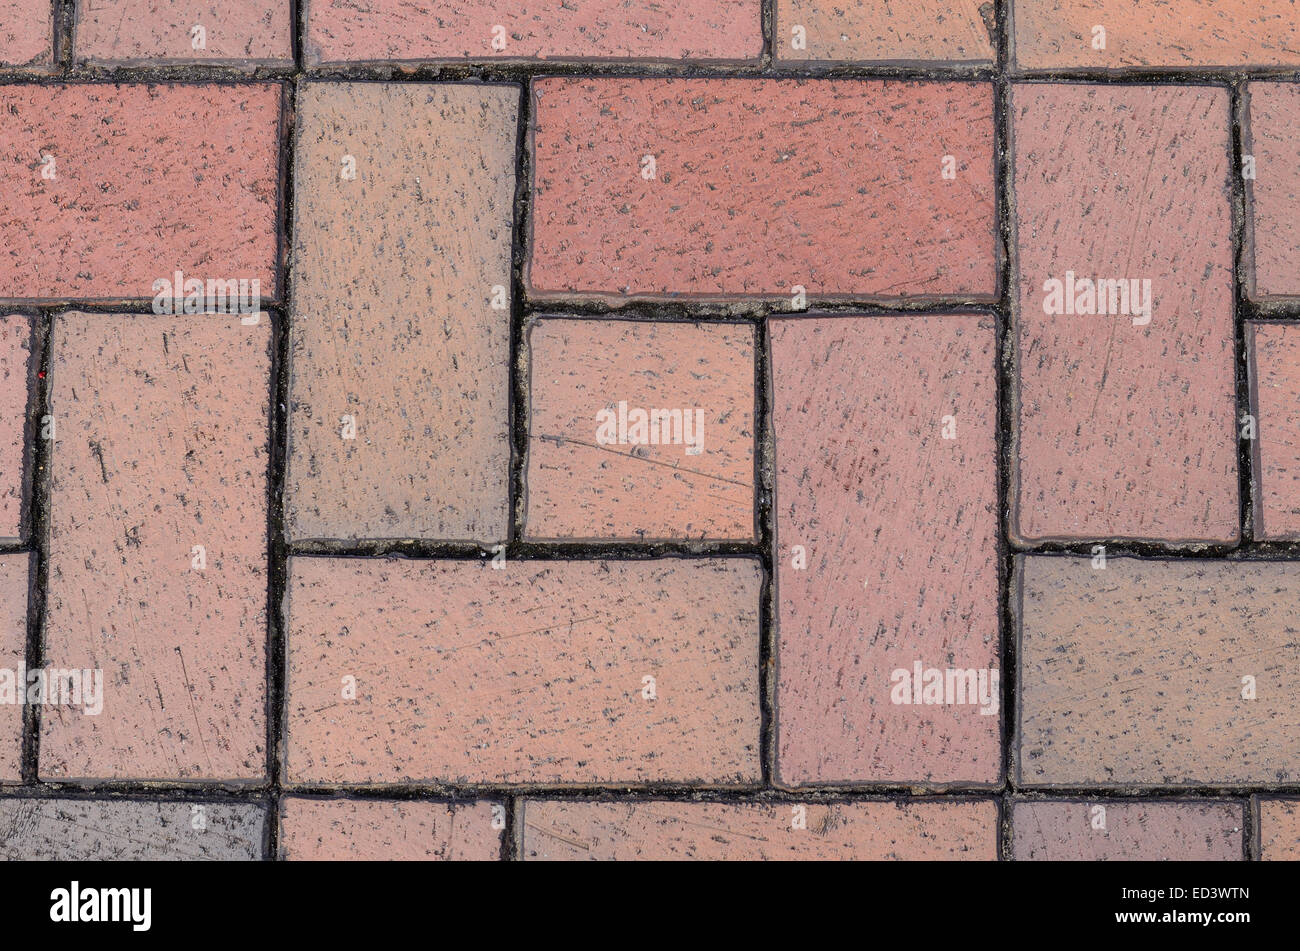 brick wall seamless Vector illustration background - texture pattern for continuous replicate - Stock Image